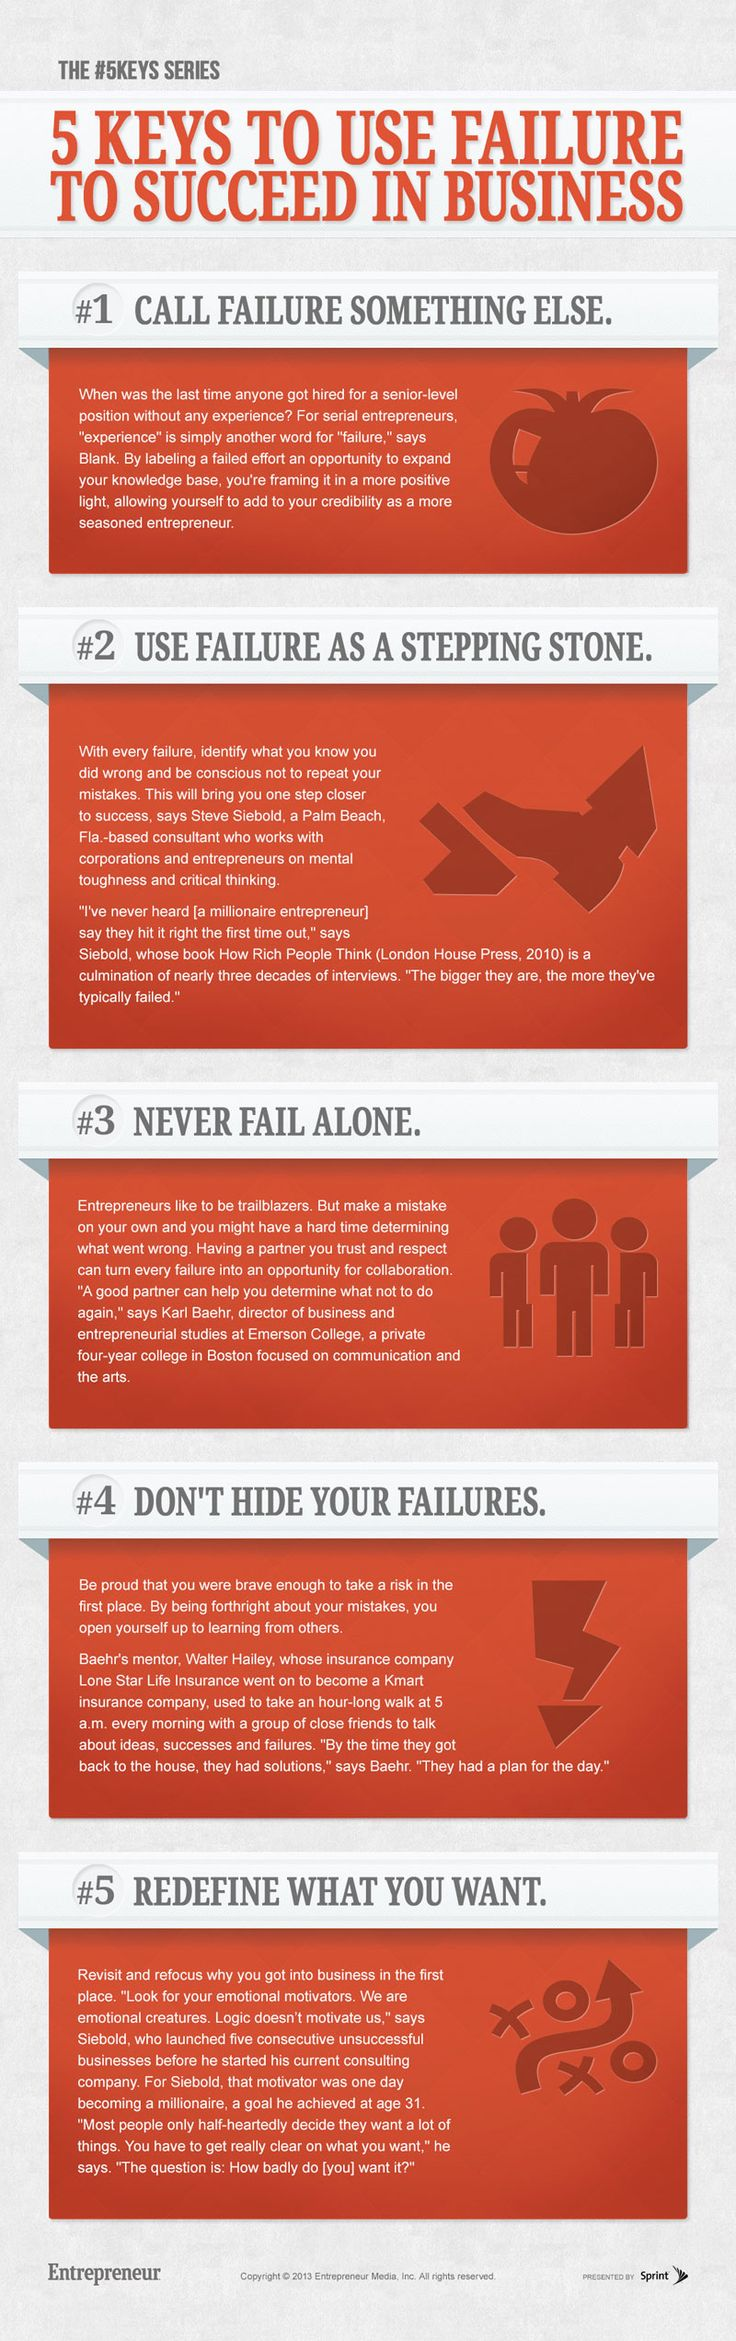 5 Keys to Use Failure to Succeed in Business